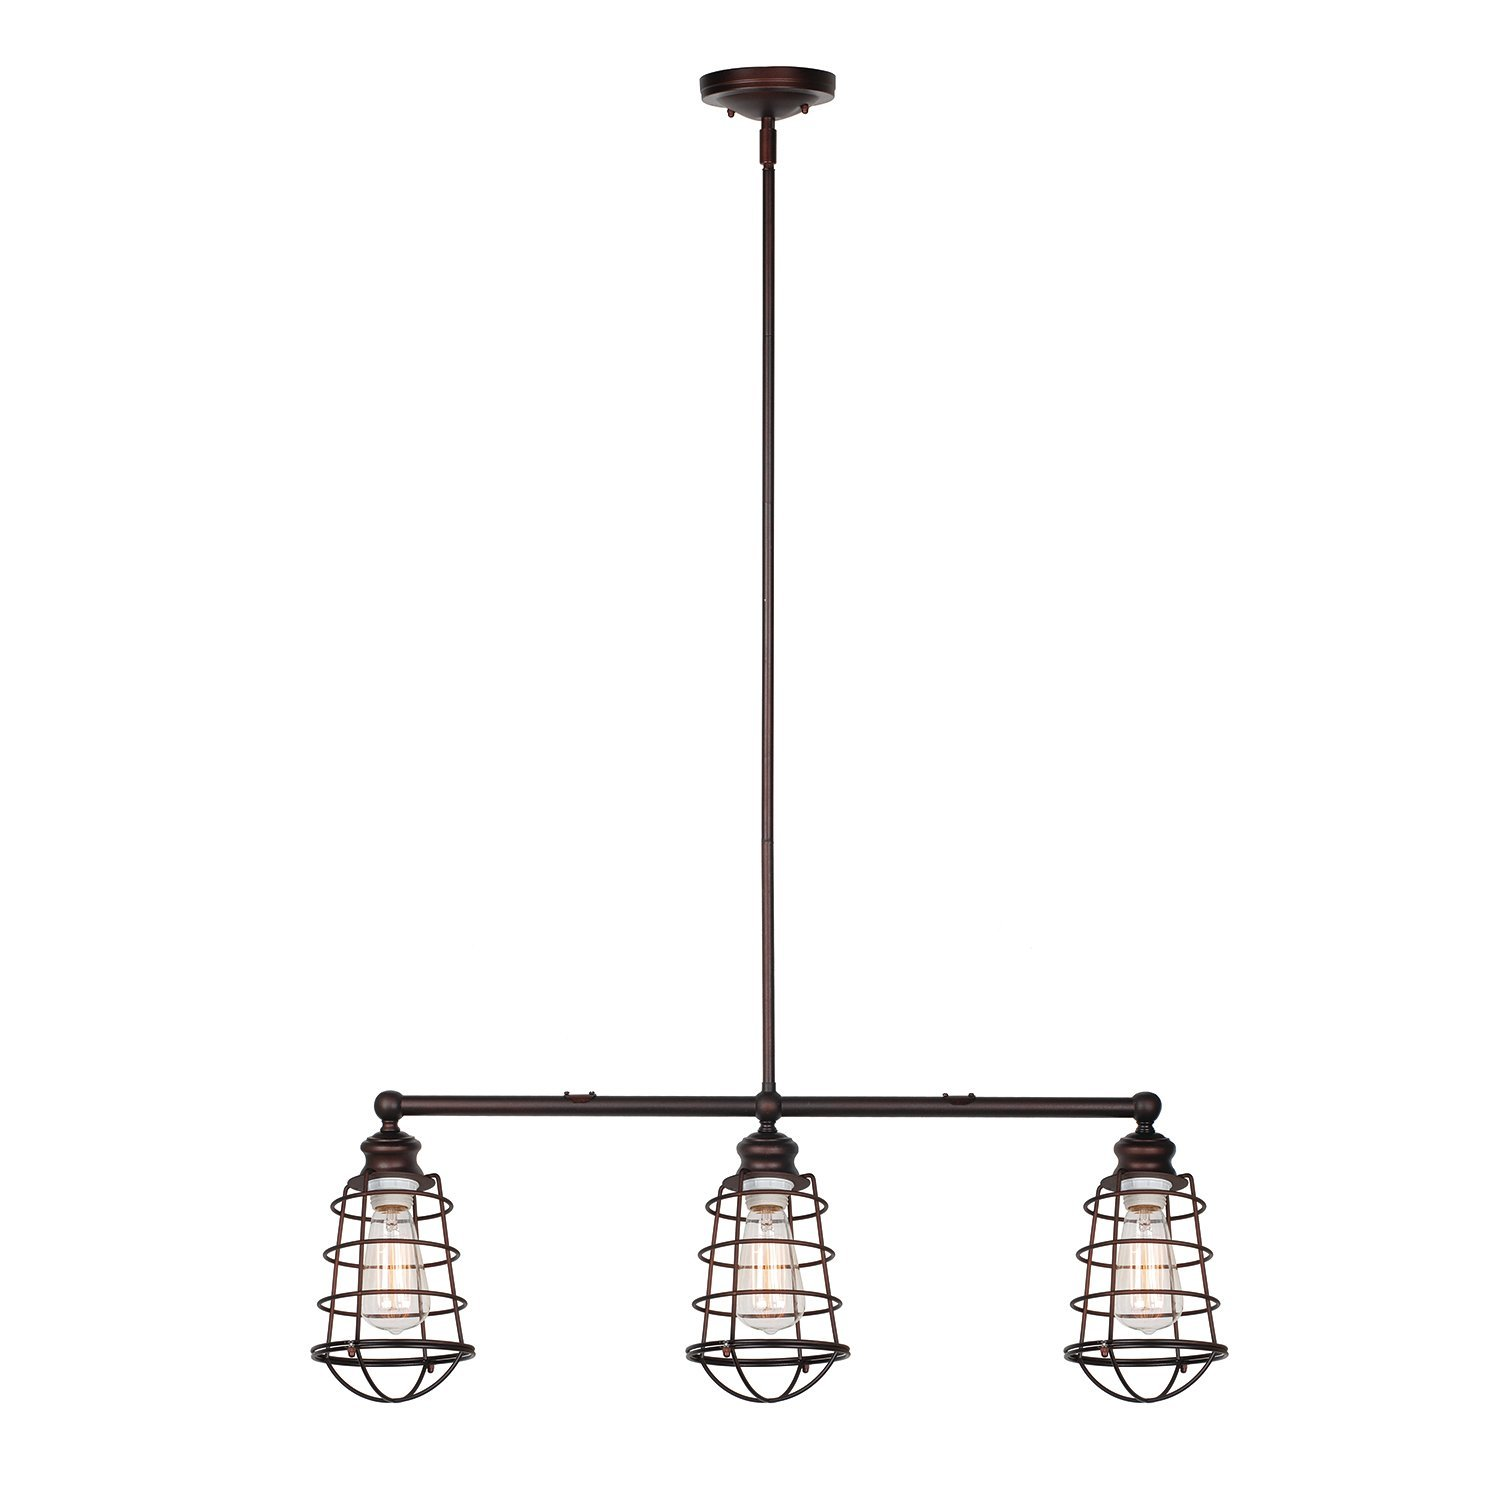 Design House Ajax 3-Light Pendant, Coffee Bronze Finish - 519785